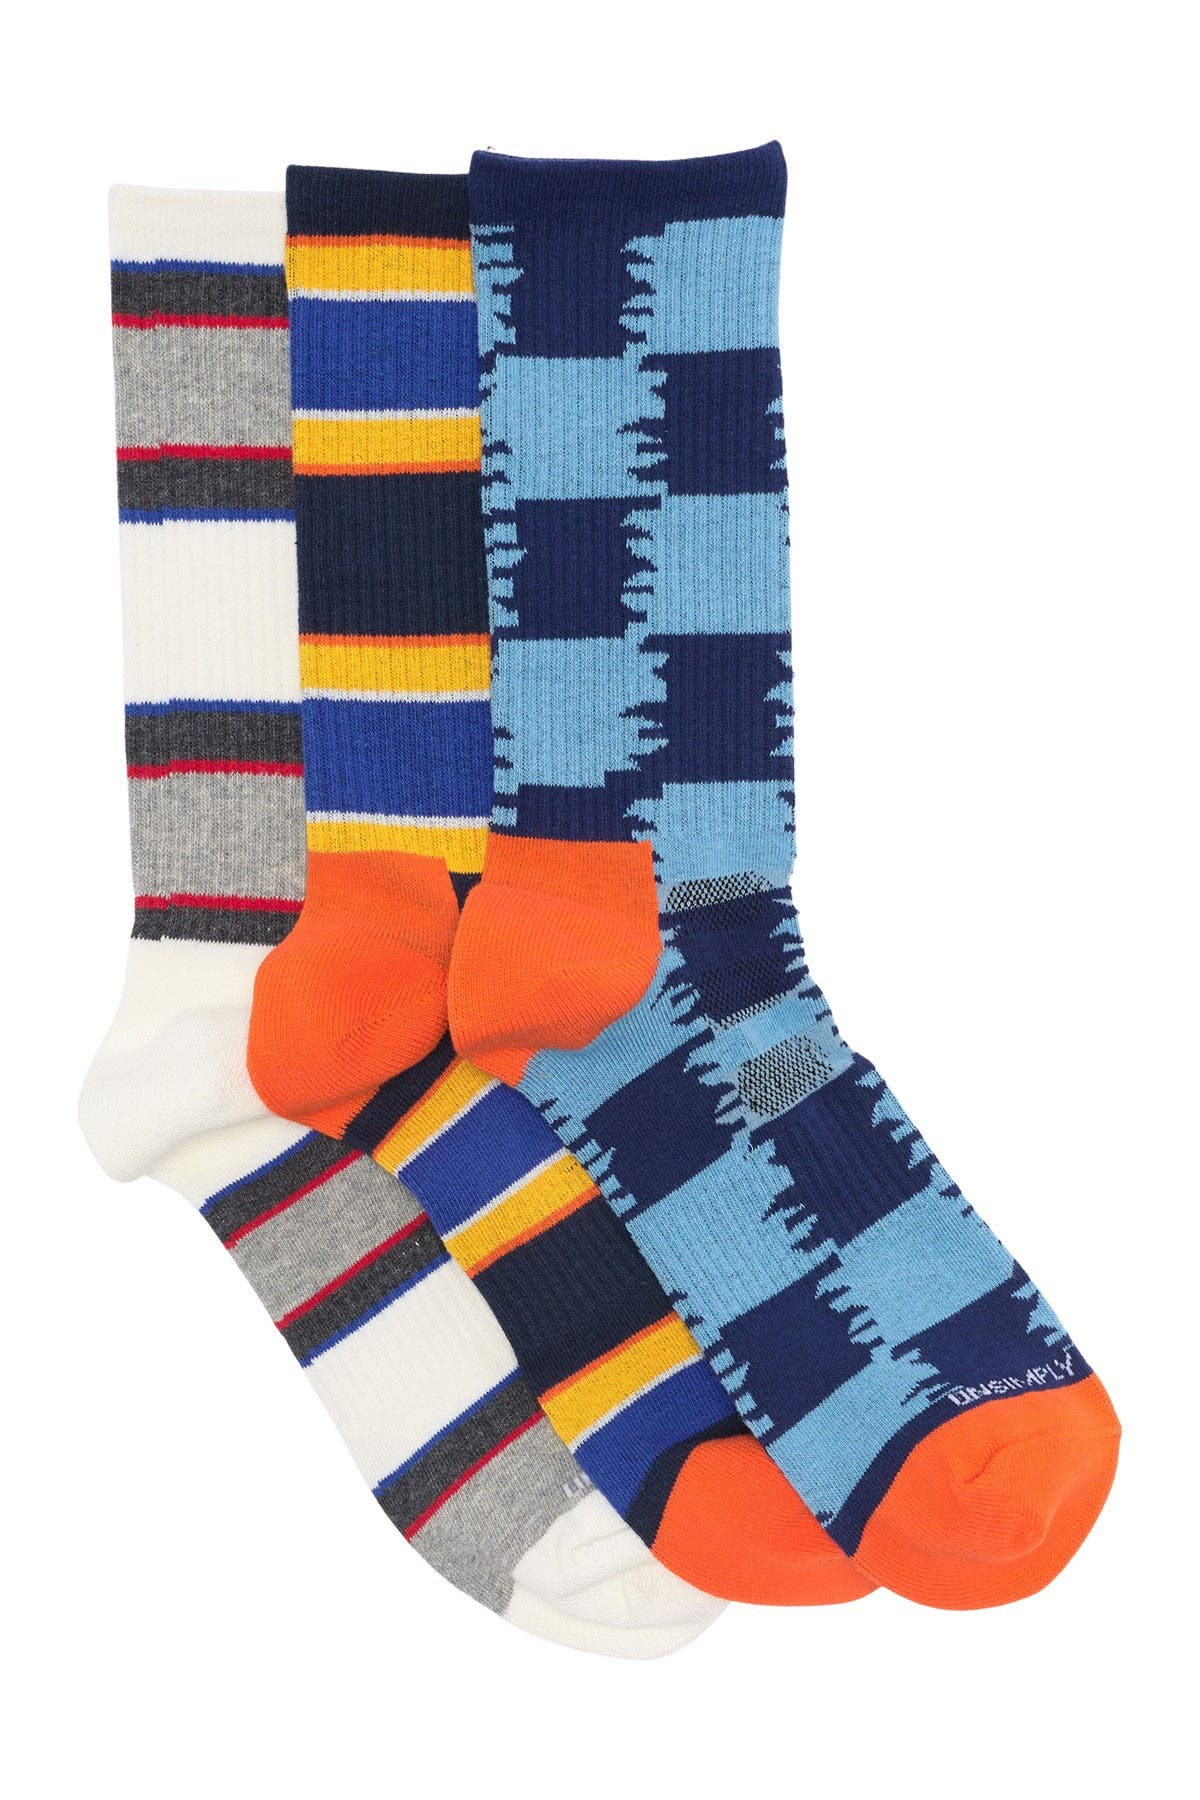 Image of Unsimply Stitched Athletic Crew Socks - Pack of 3